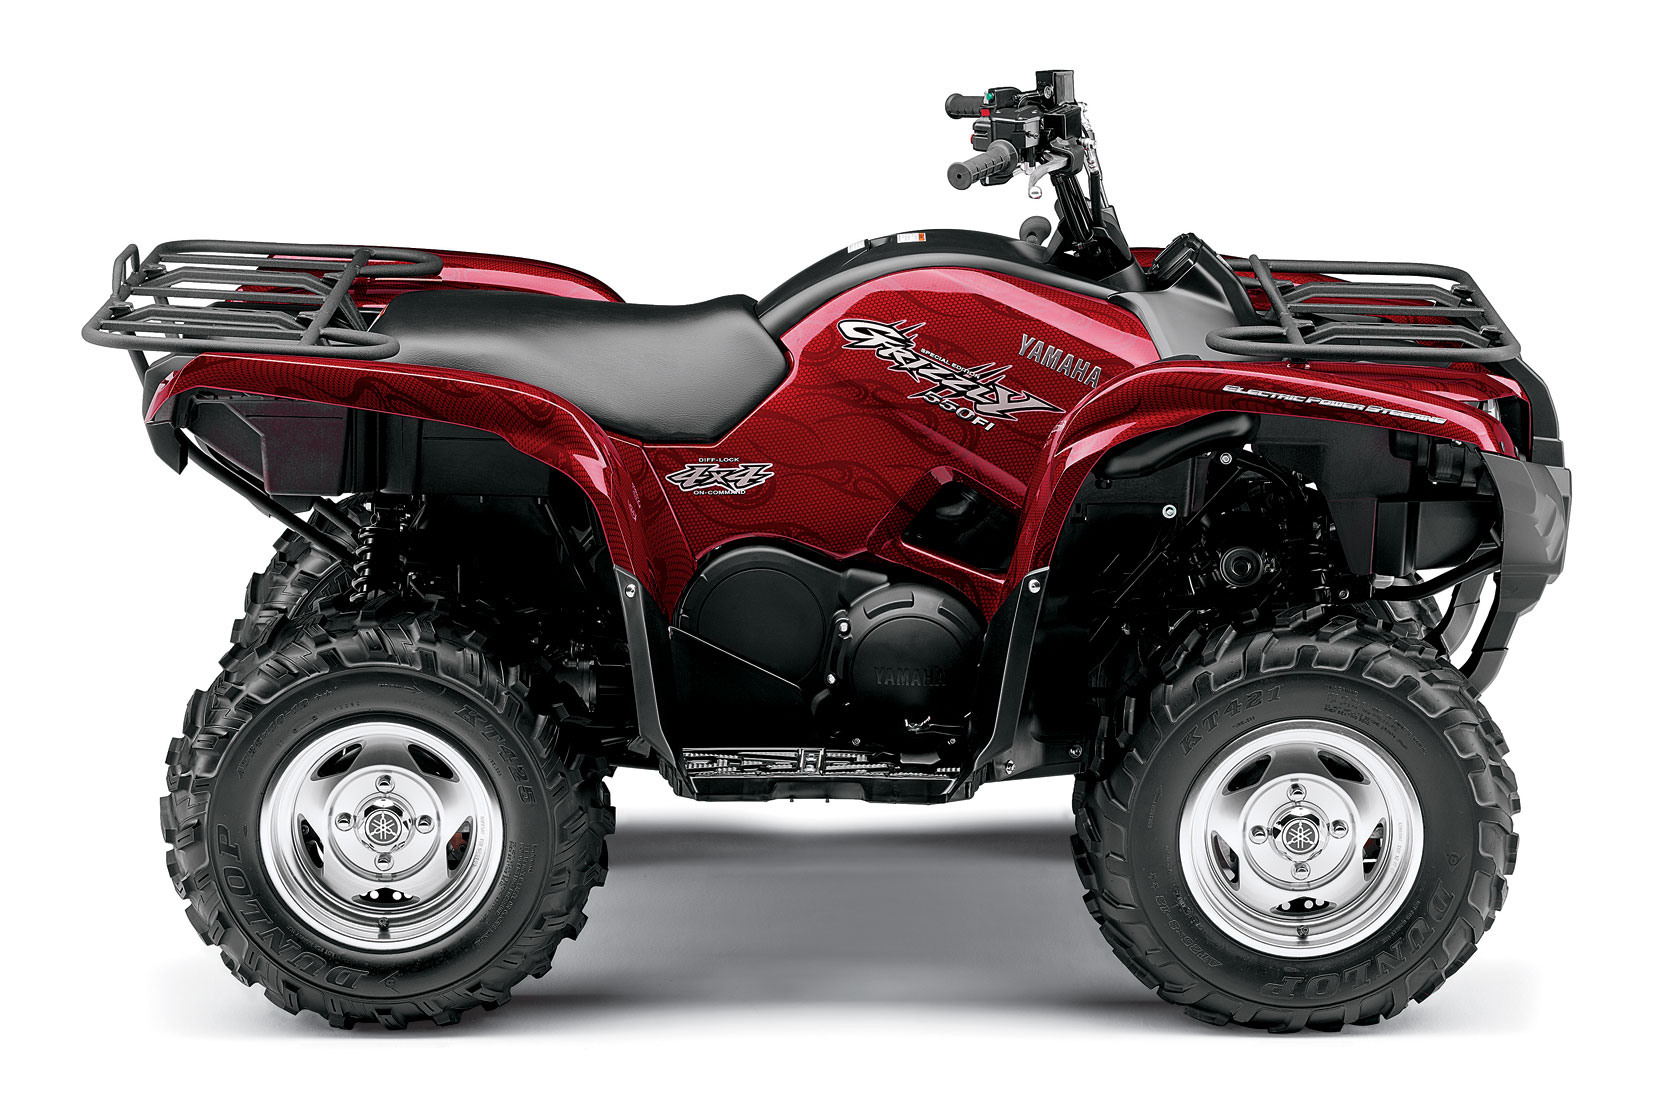 Yamaha grizzly 550 fi eps special edition specs 2008 for Yamaha grizzly 600